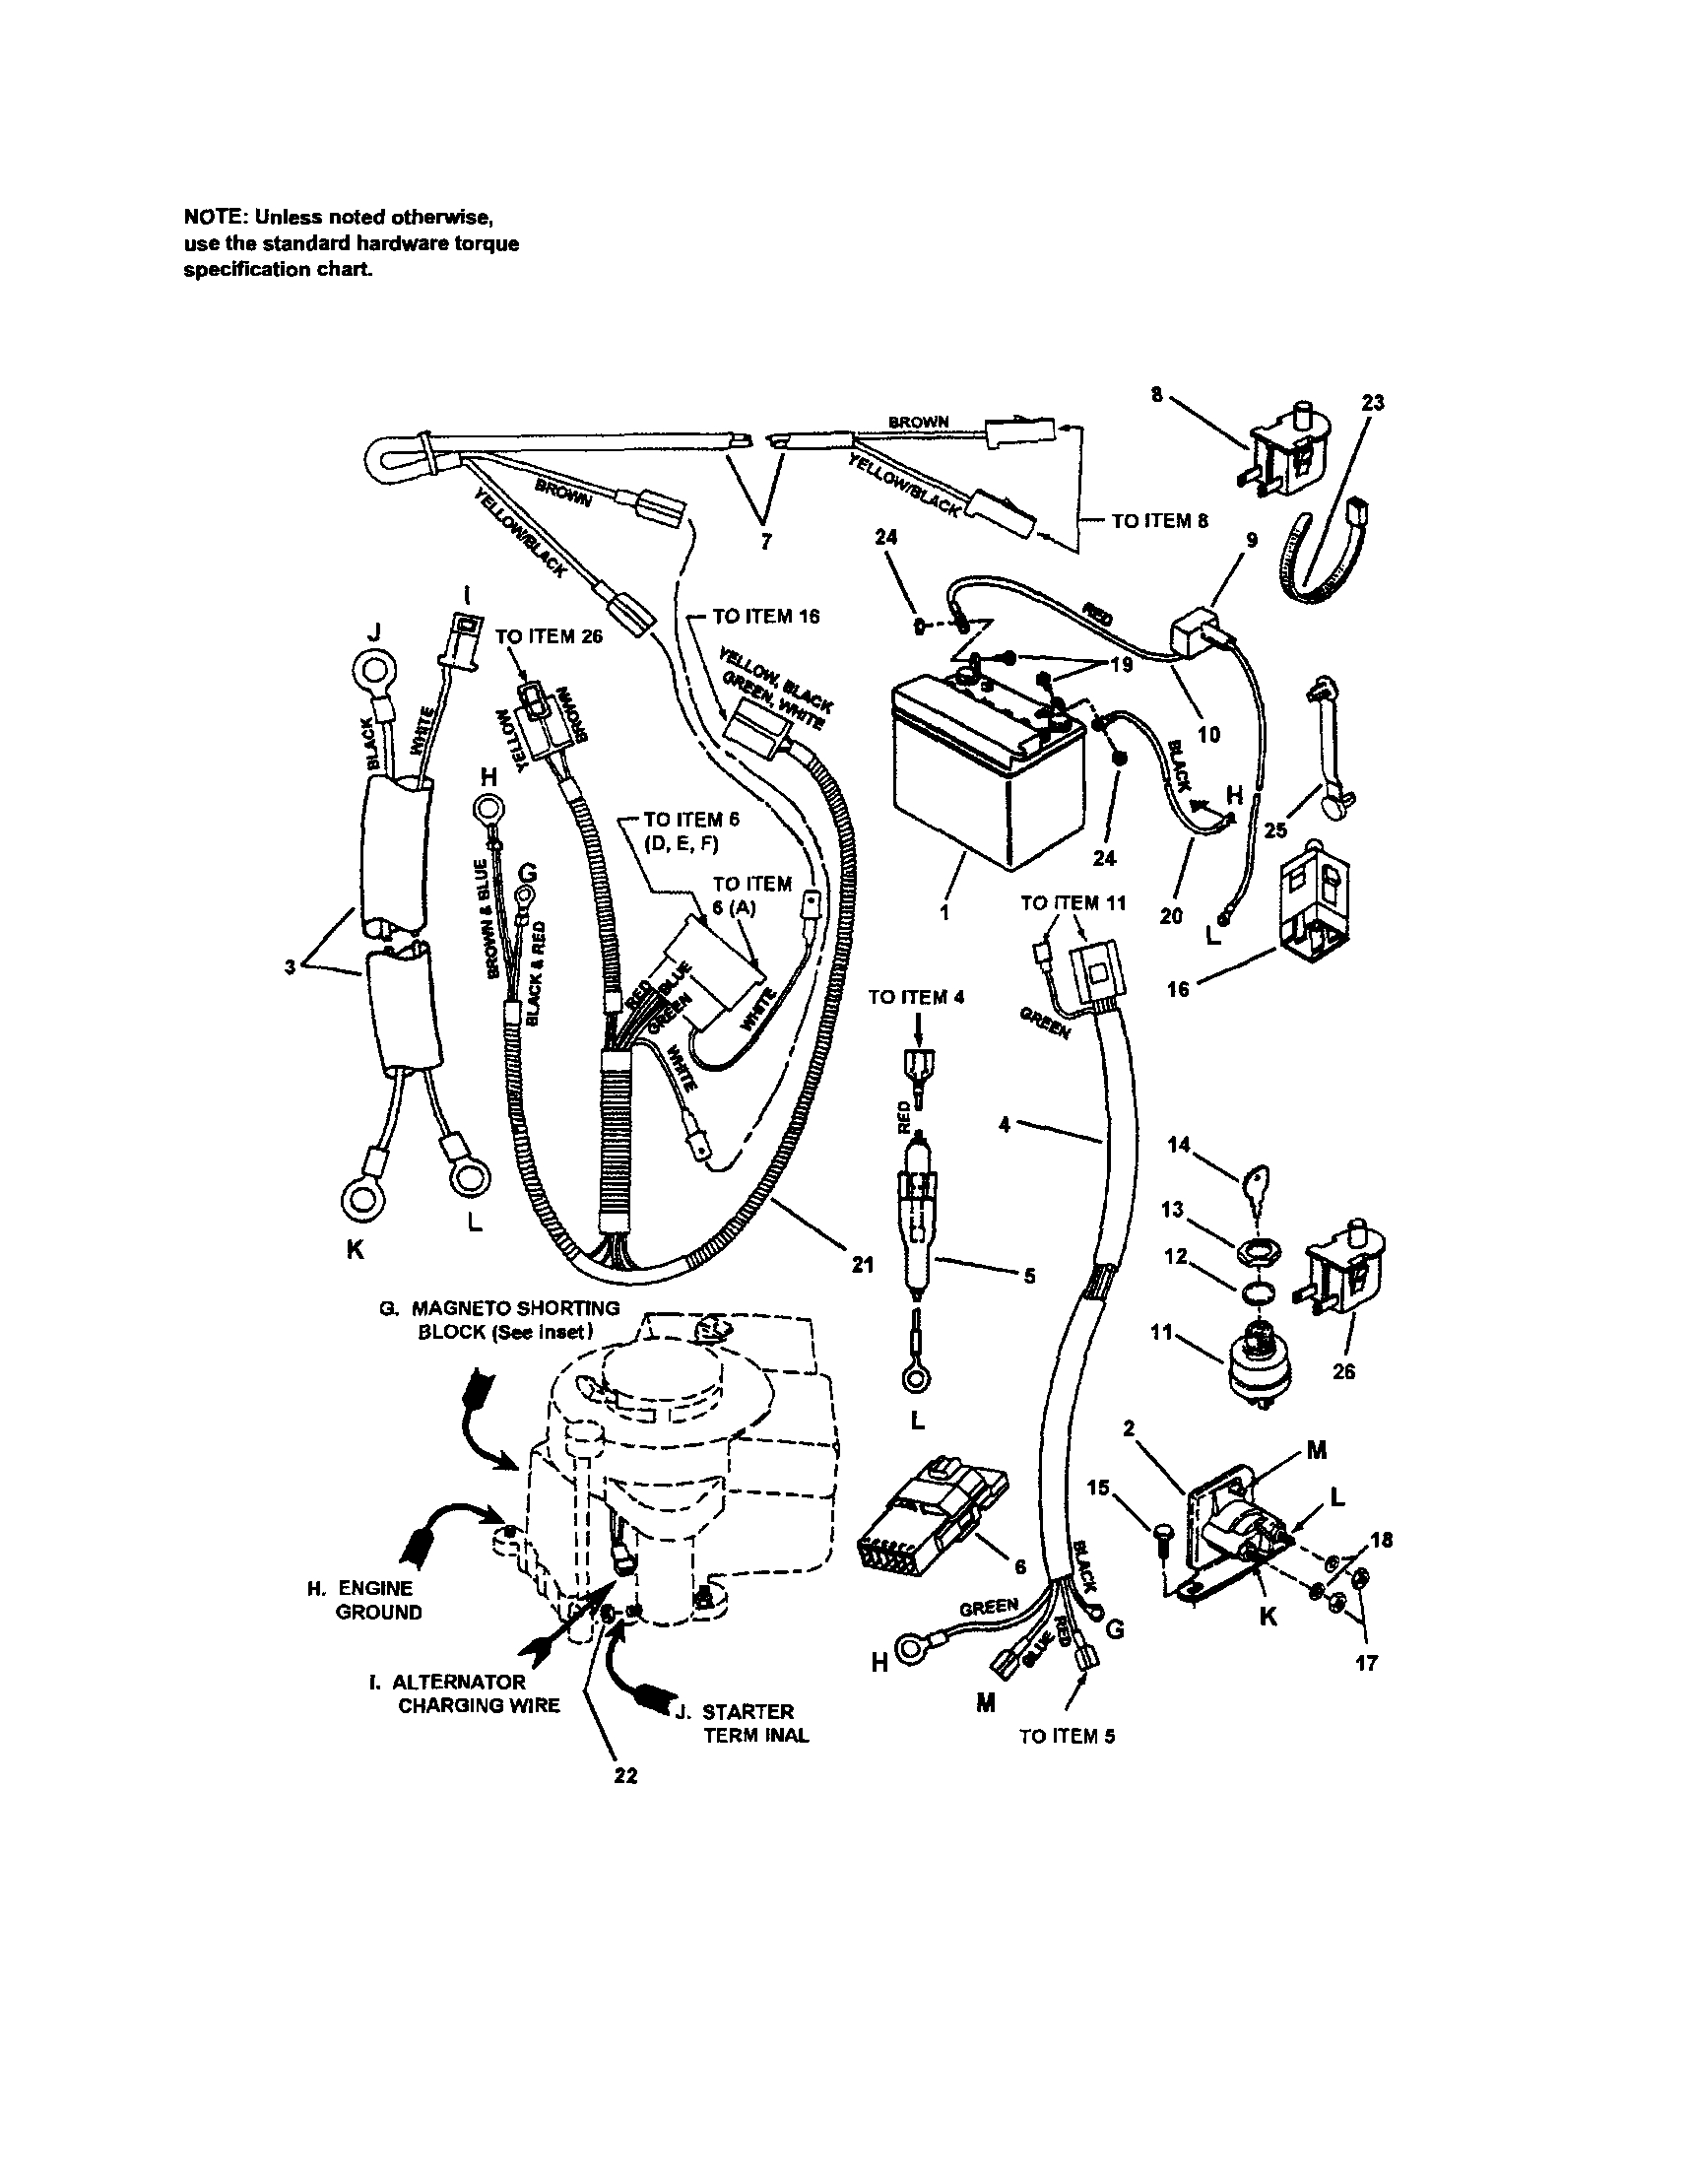 14 Hp Briggs And Stratton Wiring Diagram | Wiring Diagram - Briggs And Stratton Wiring Diagram 14Hp